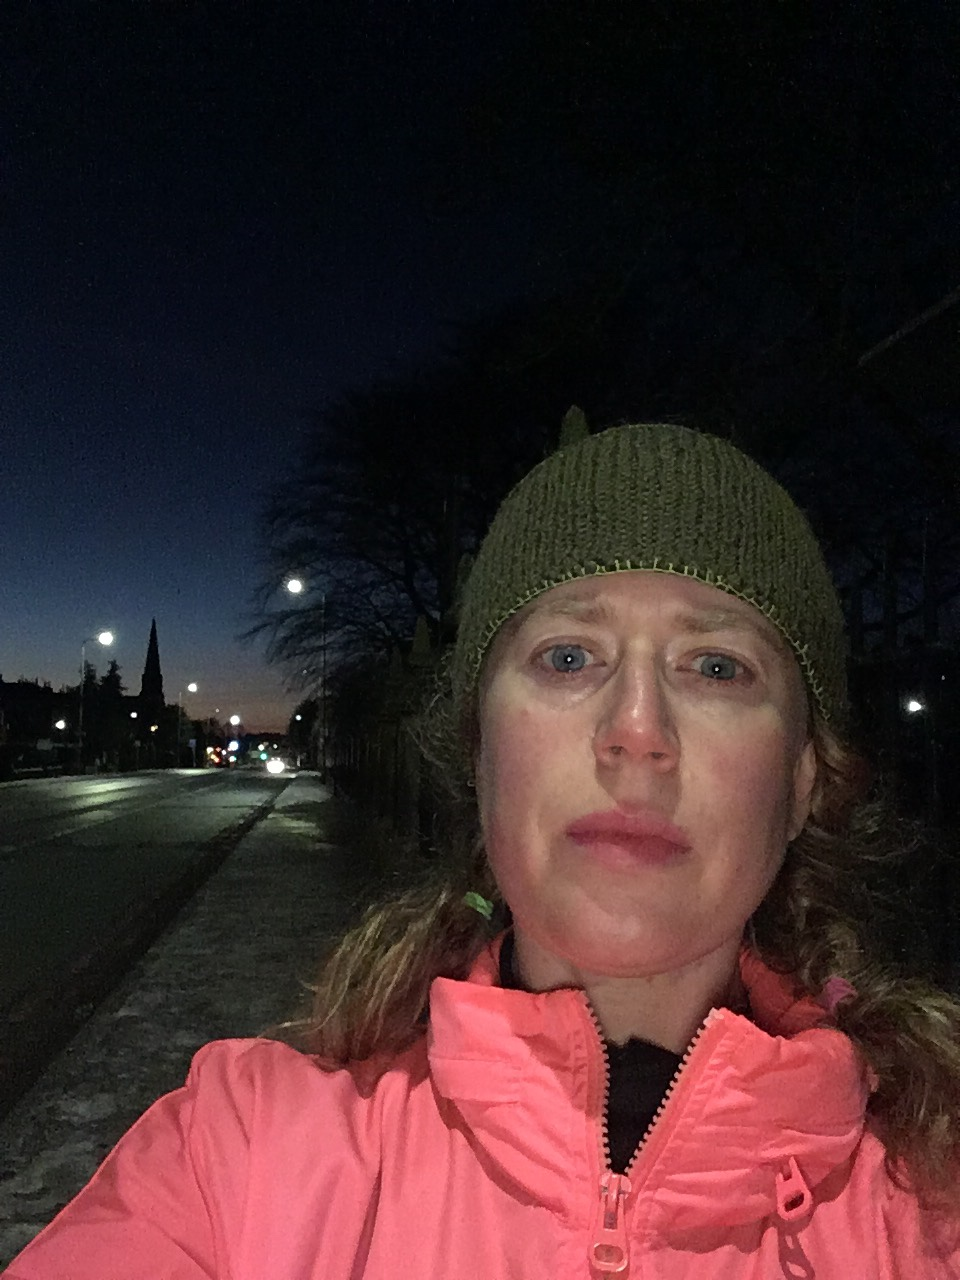 RWoman in pink in a run selfie on the streets of Edinburgh